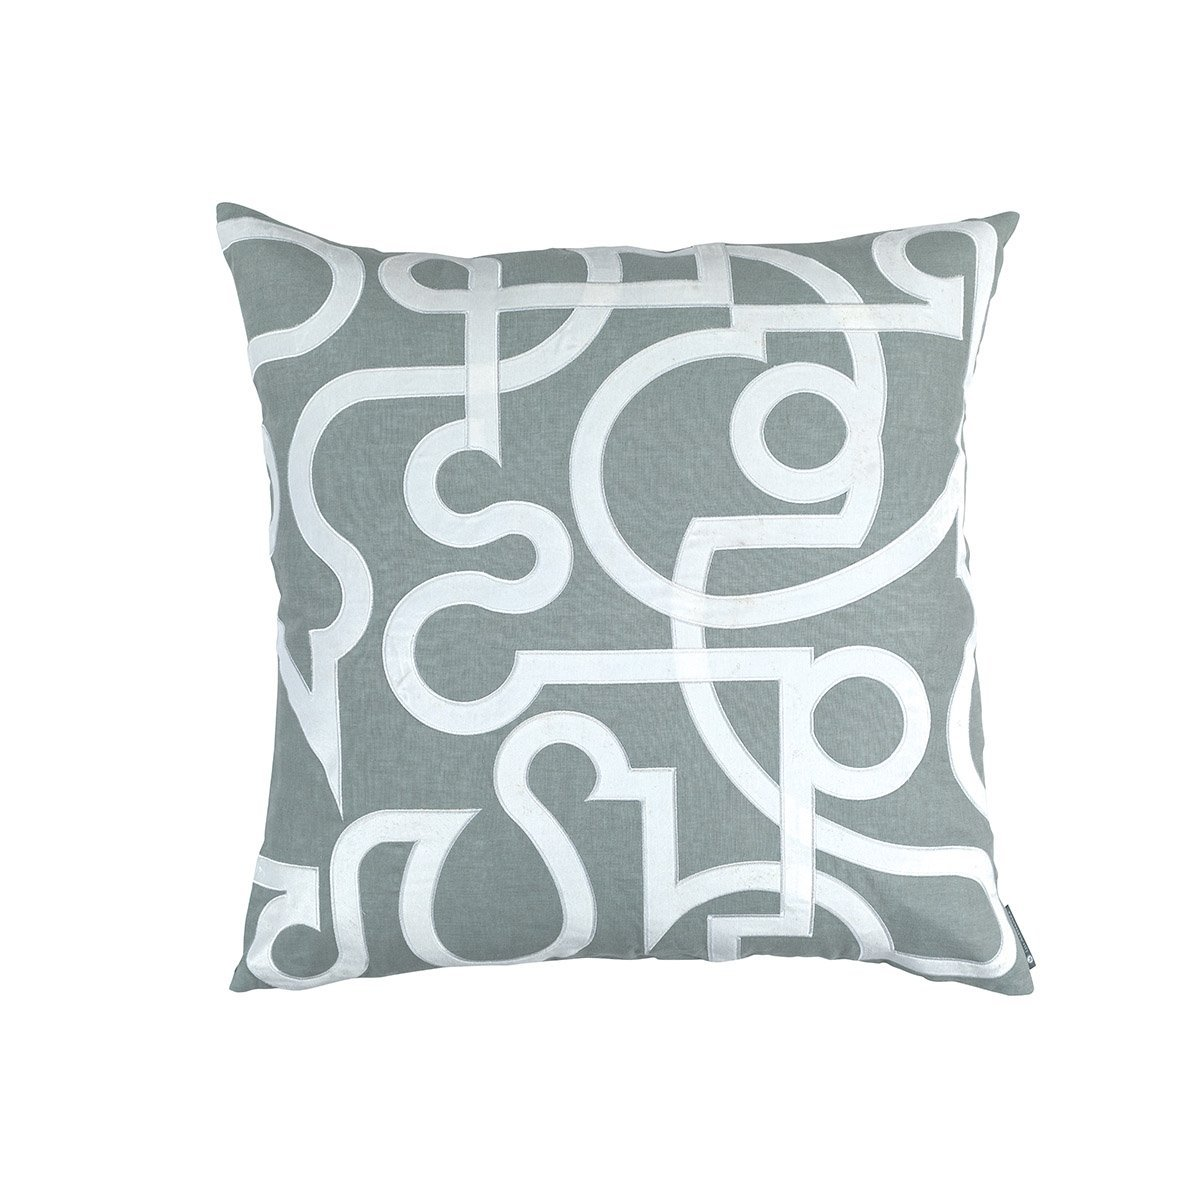 Geo Sky Pillow by Lili Alessandra | Fig Linens and Home